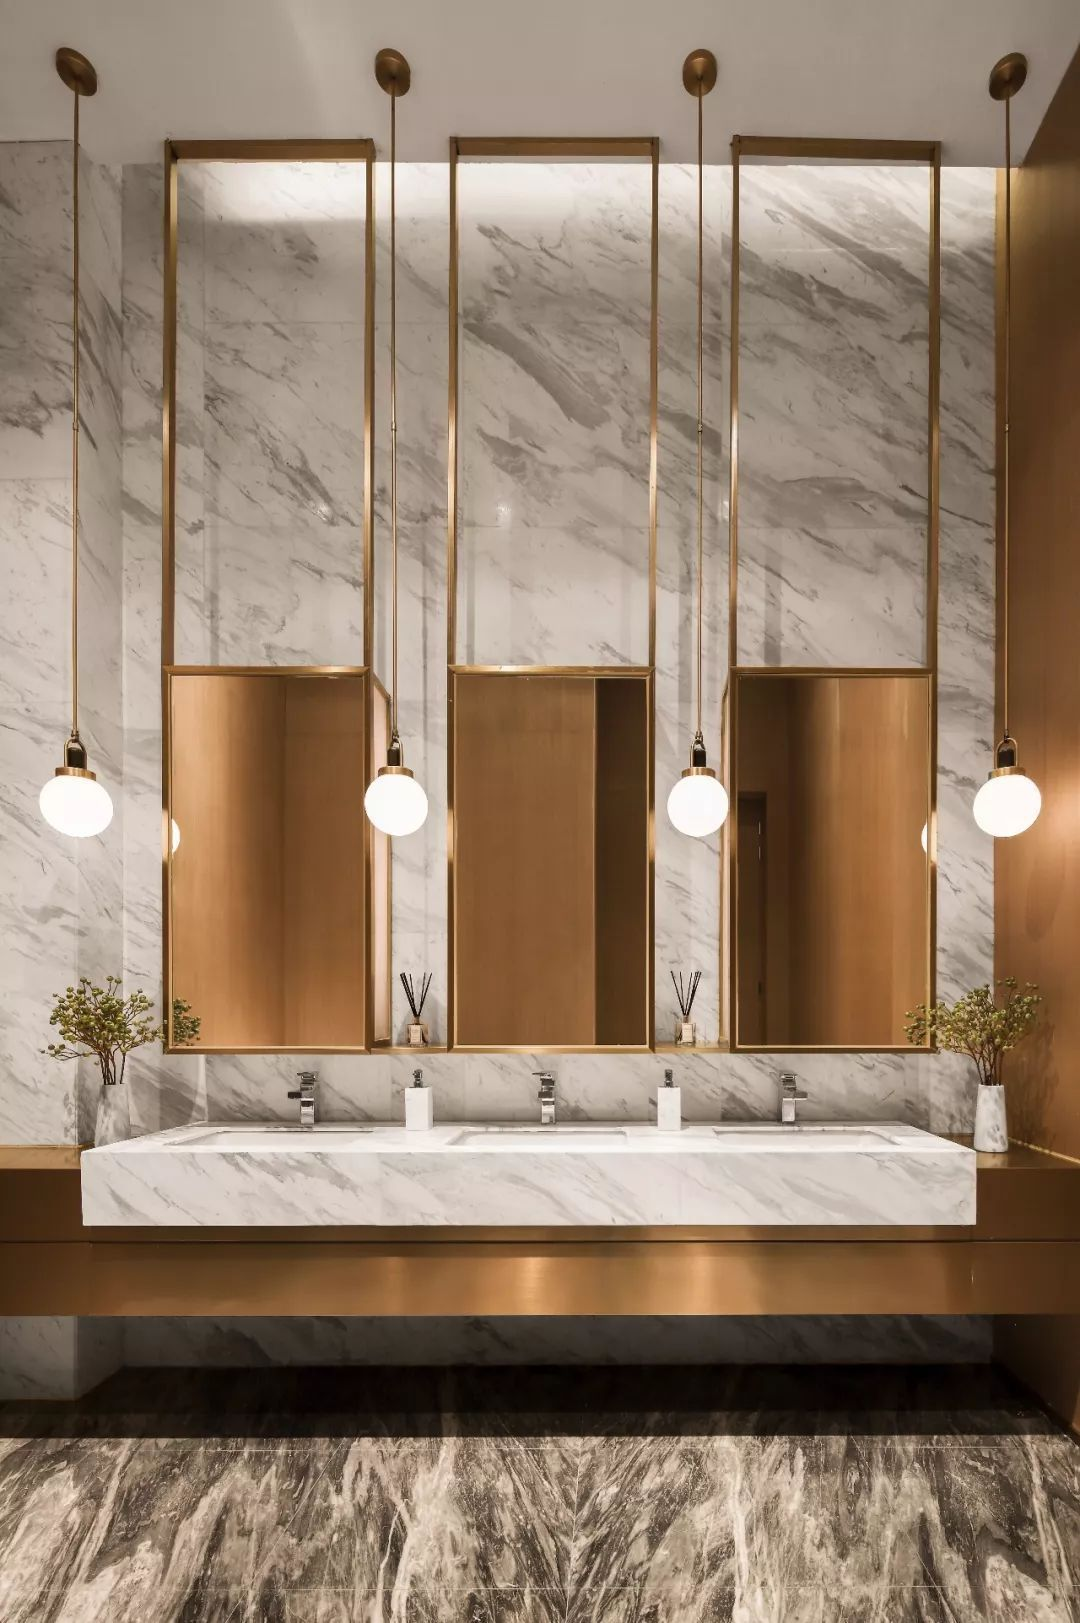 Discover The Latest Bathroom Design Trends For Your Amazing Project And Create The Bathroom Of Your Dr Restroom Design Bathroom Design Latest Bathroom Designs